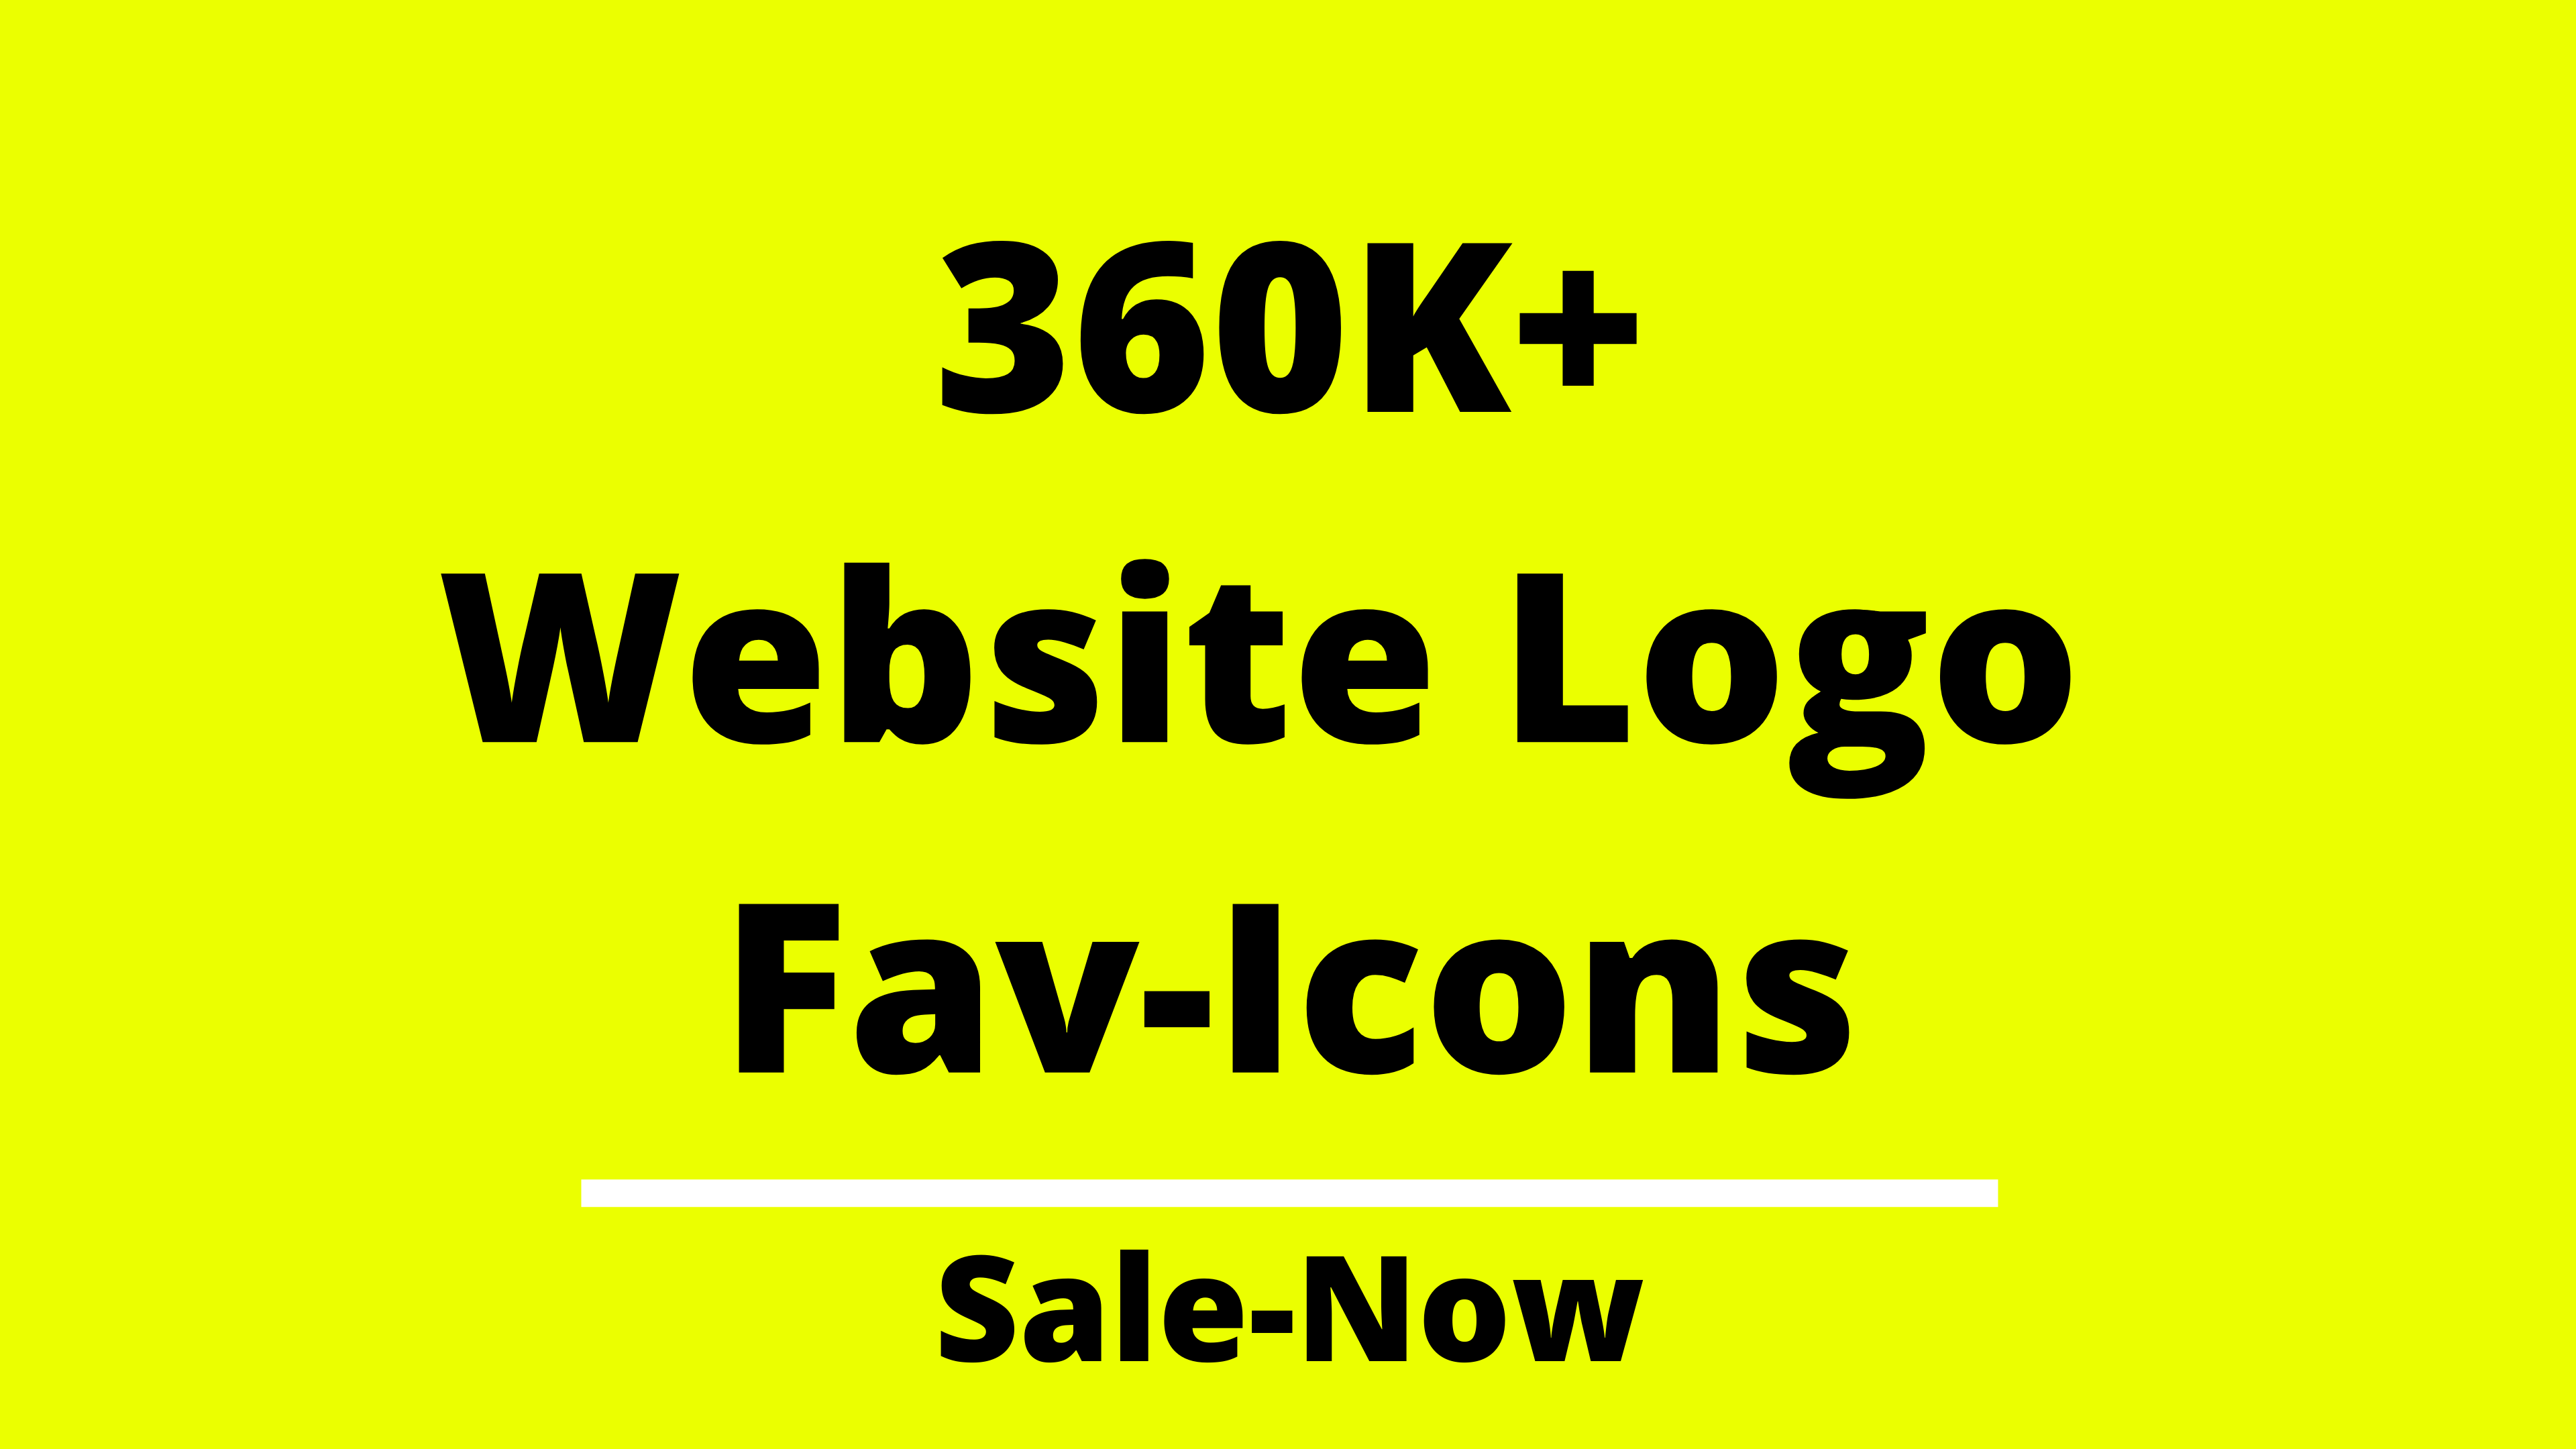 360K+ Website Logo Fav Icons Photos